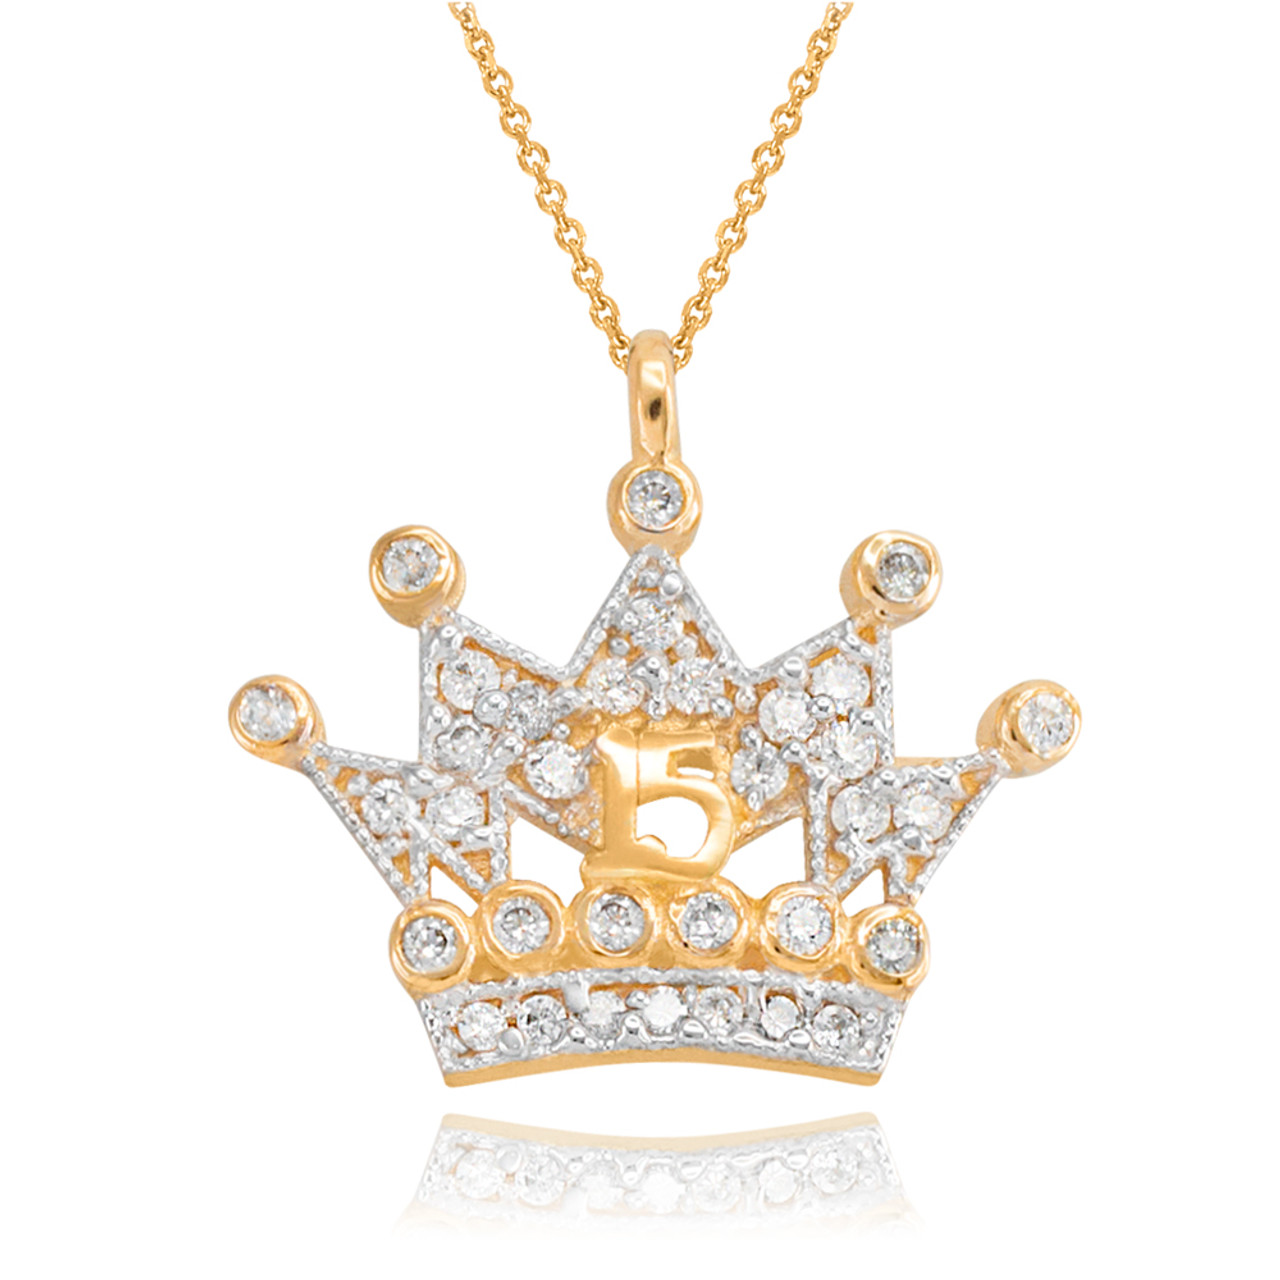 kay zm white gold necklace rose lab kaystore to hover crown zoom created en sapphires mv